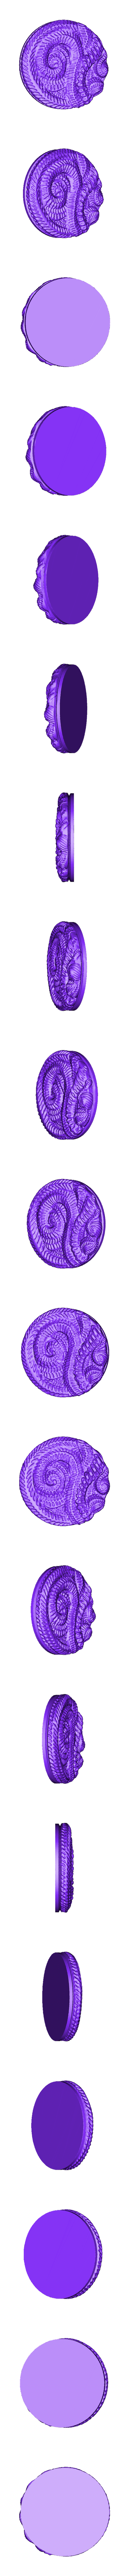 """Alien_Hive_-_1_inch_-_A.stl Download free STL file 1"""" & 2' Round Bases - The Ignis Quadrant • 3D printing template, ec3d"""